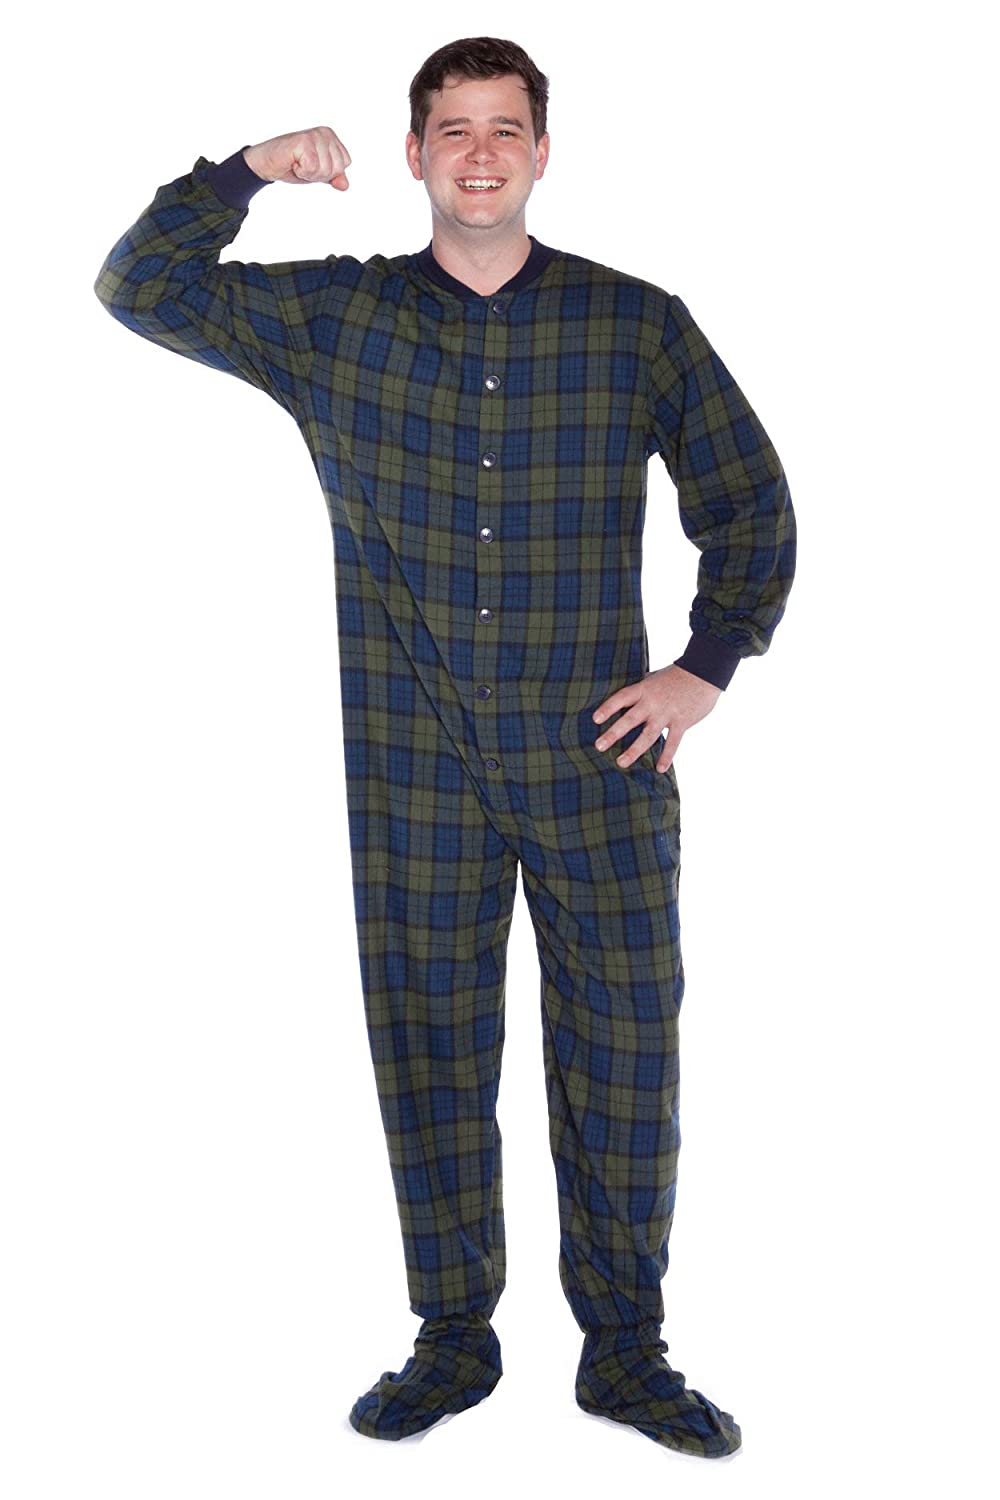 c1522d924d6a64 Amazon.com: Navy Blue & Green Plaid Cotton Flannel Adult Footed Pajamas  Onesie Sleeper for Men & Women: Clothing